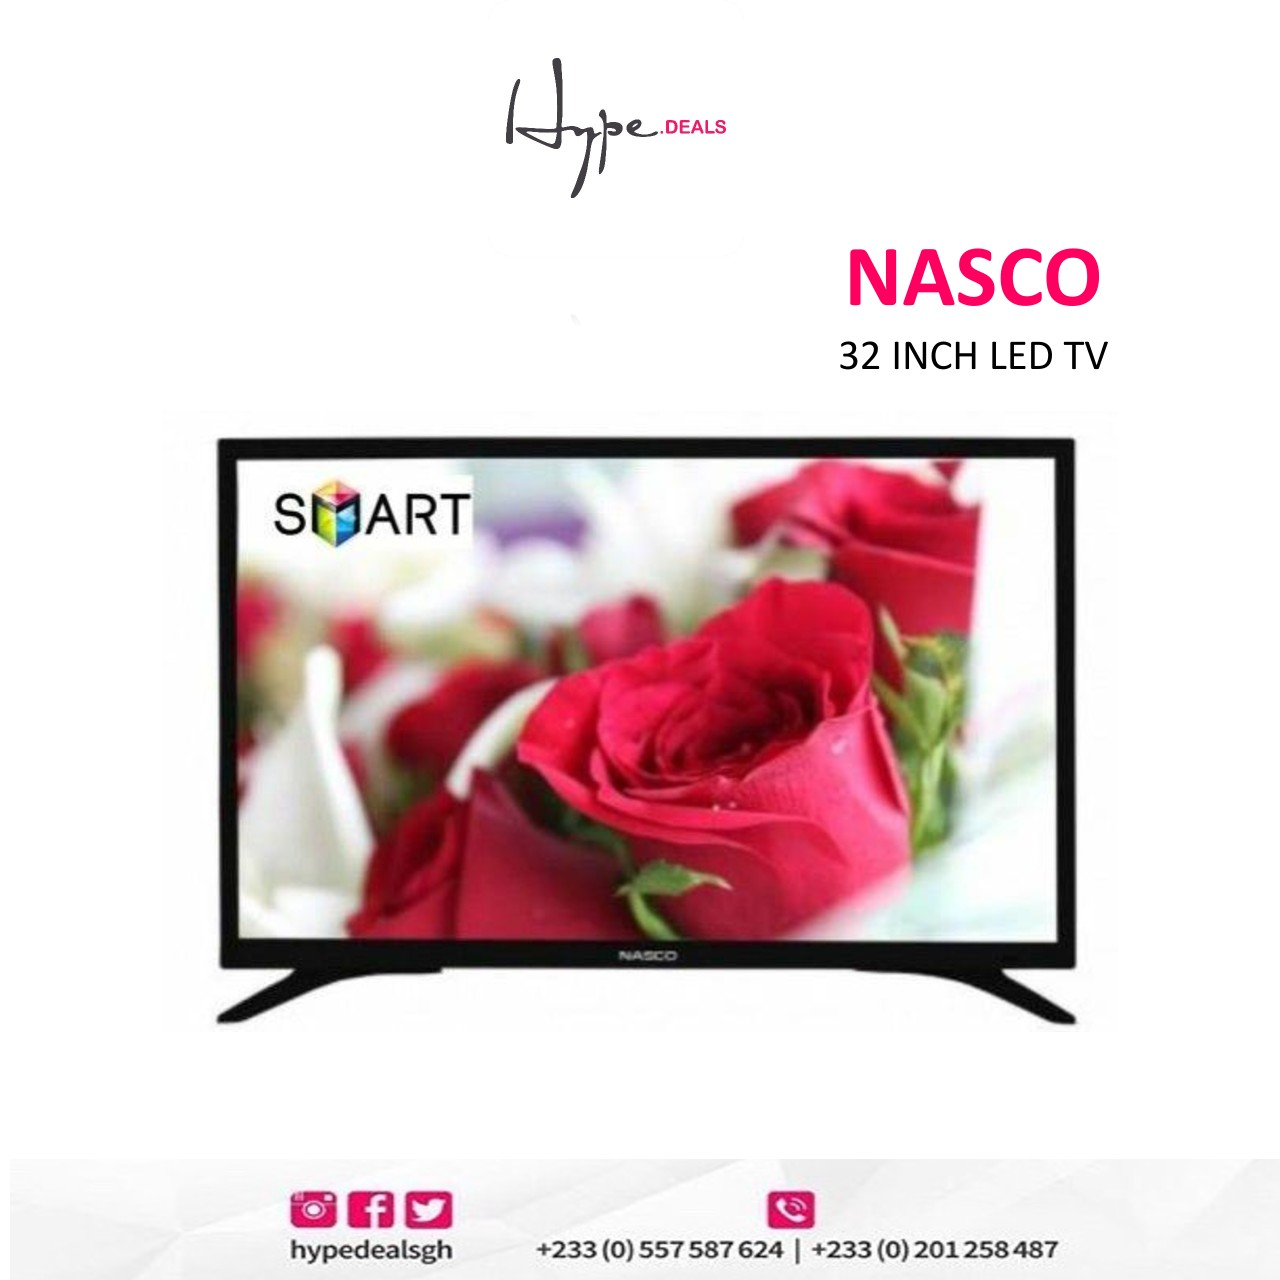 nasco tv 32 inches price